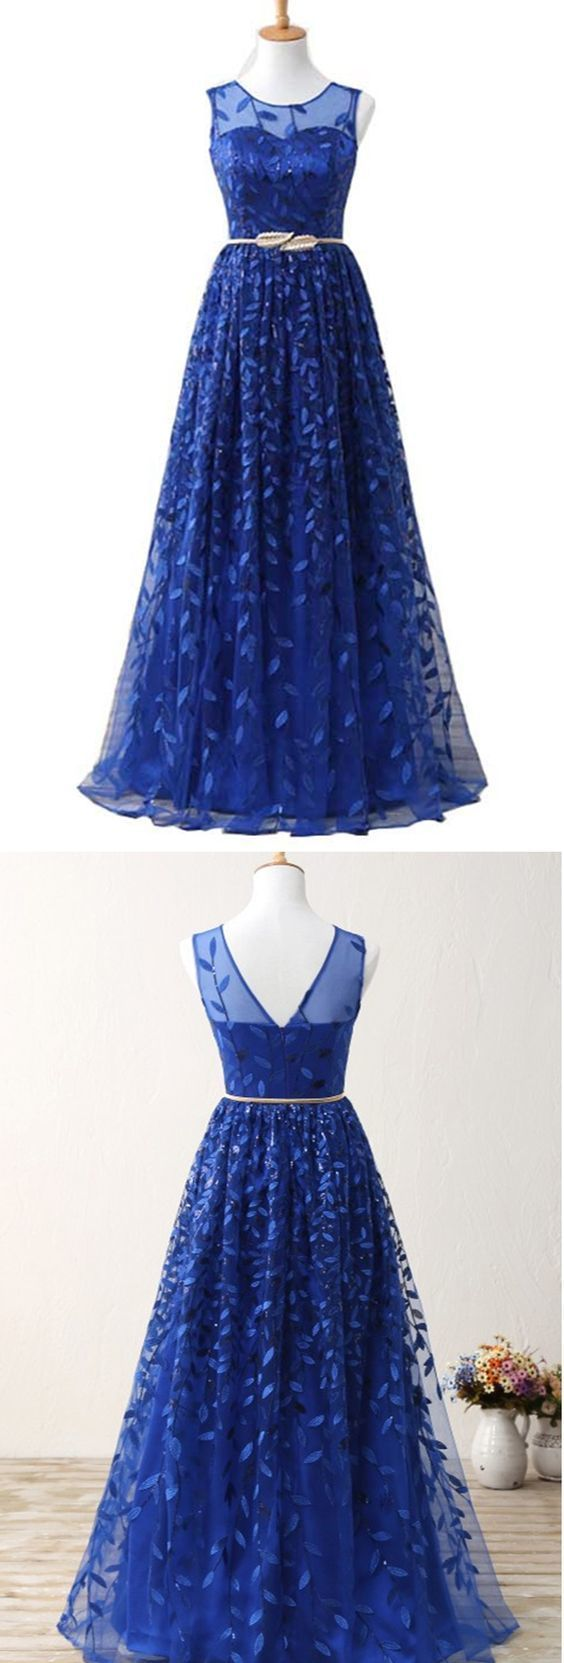 Royal Blue Prom Dress Tulle Long Prom dresses Ball Gown Evening Dresses